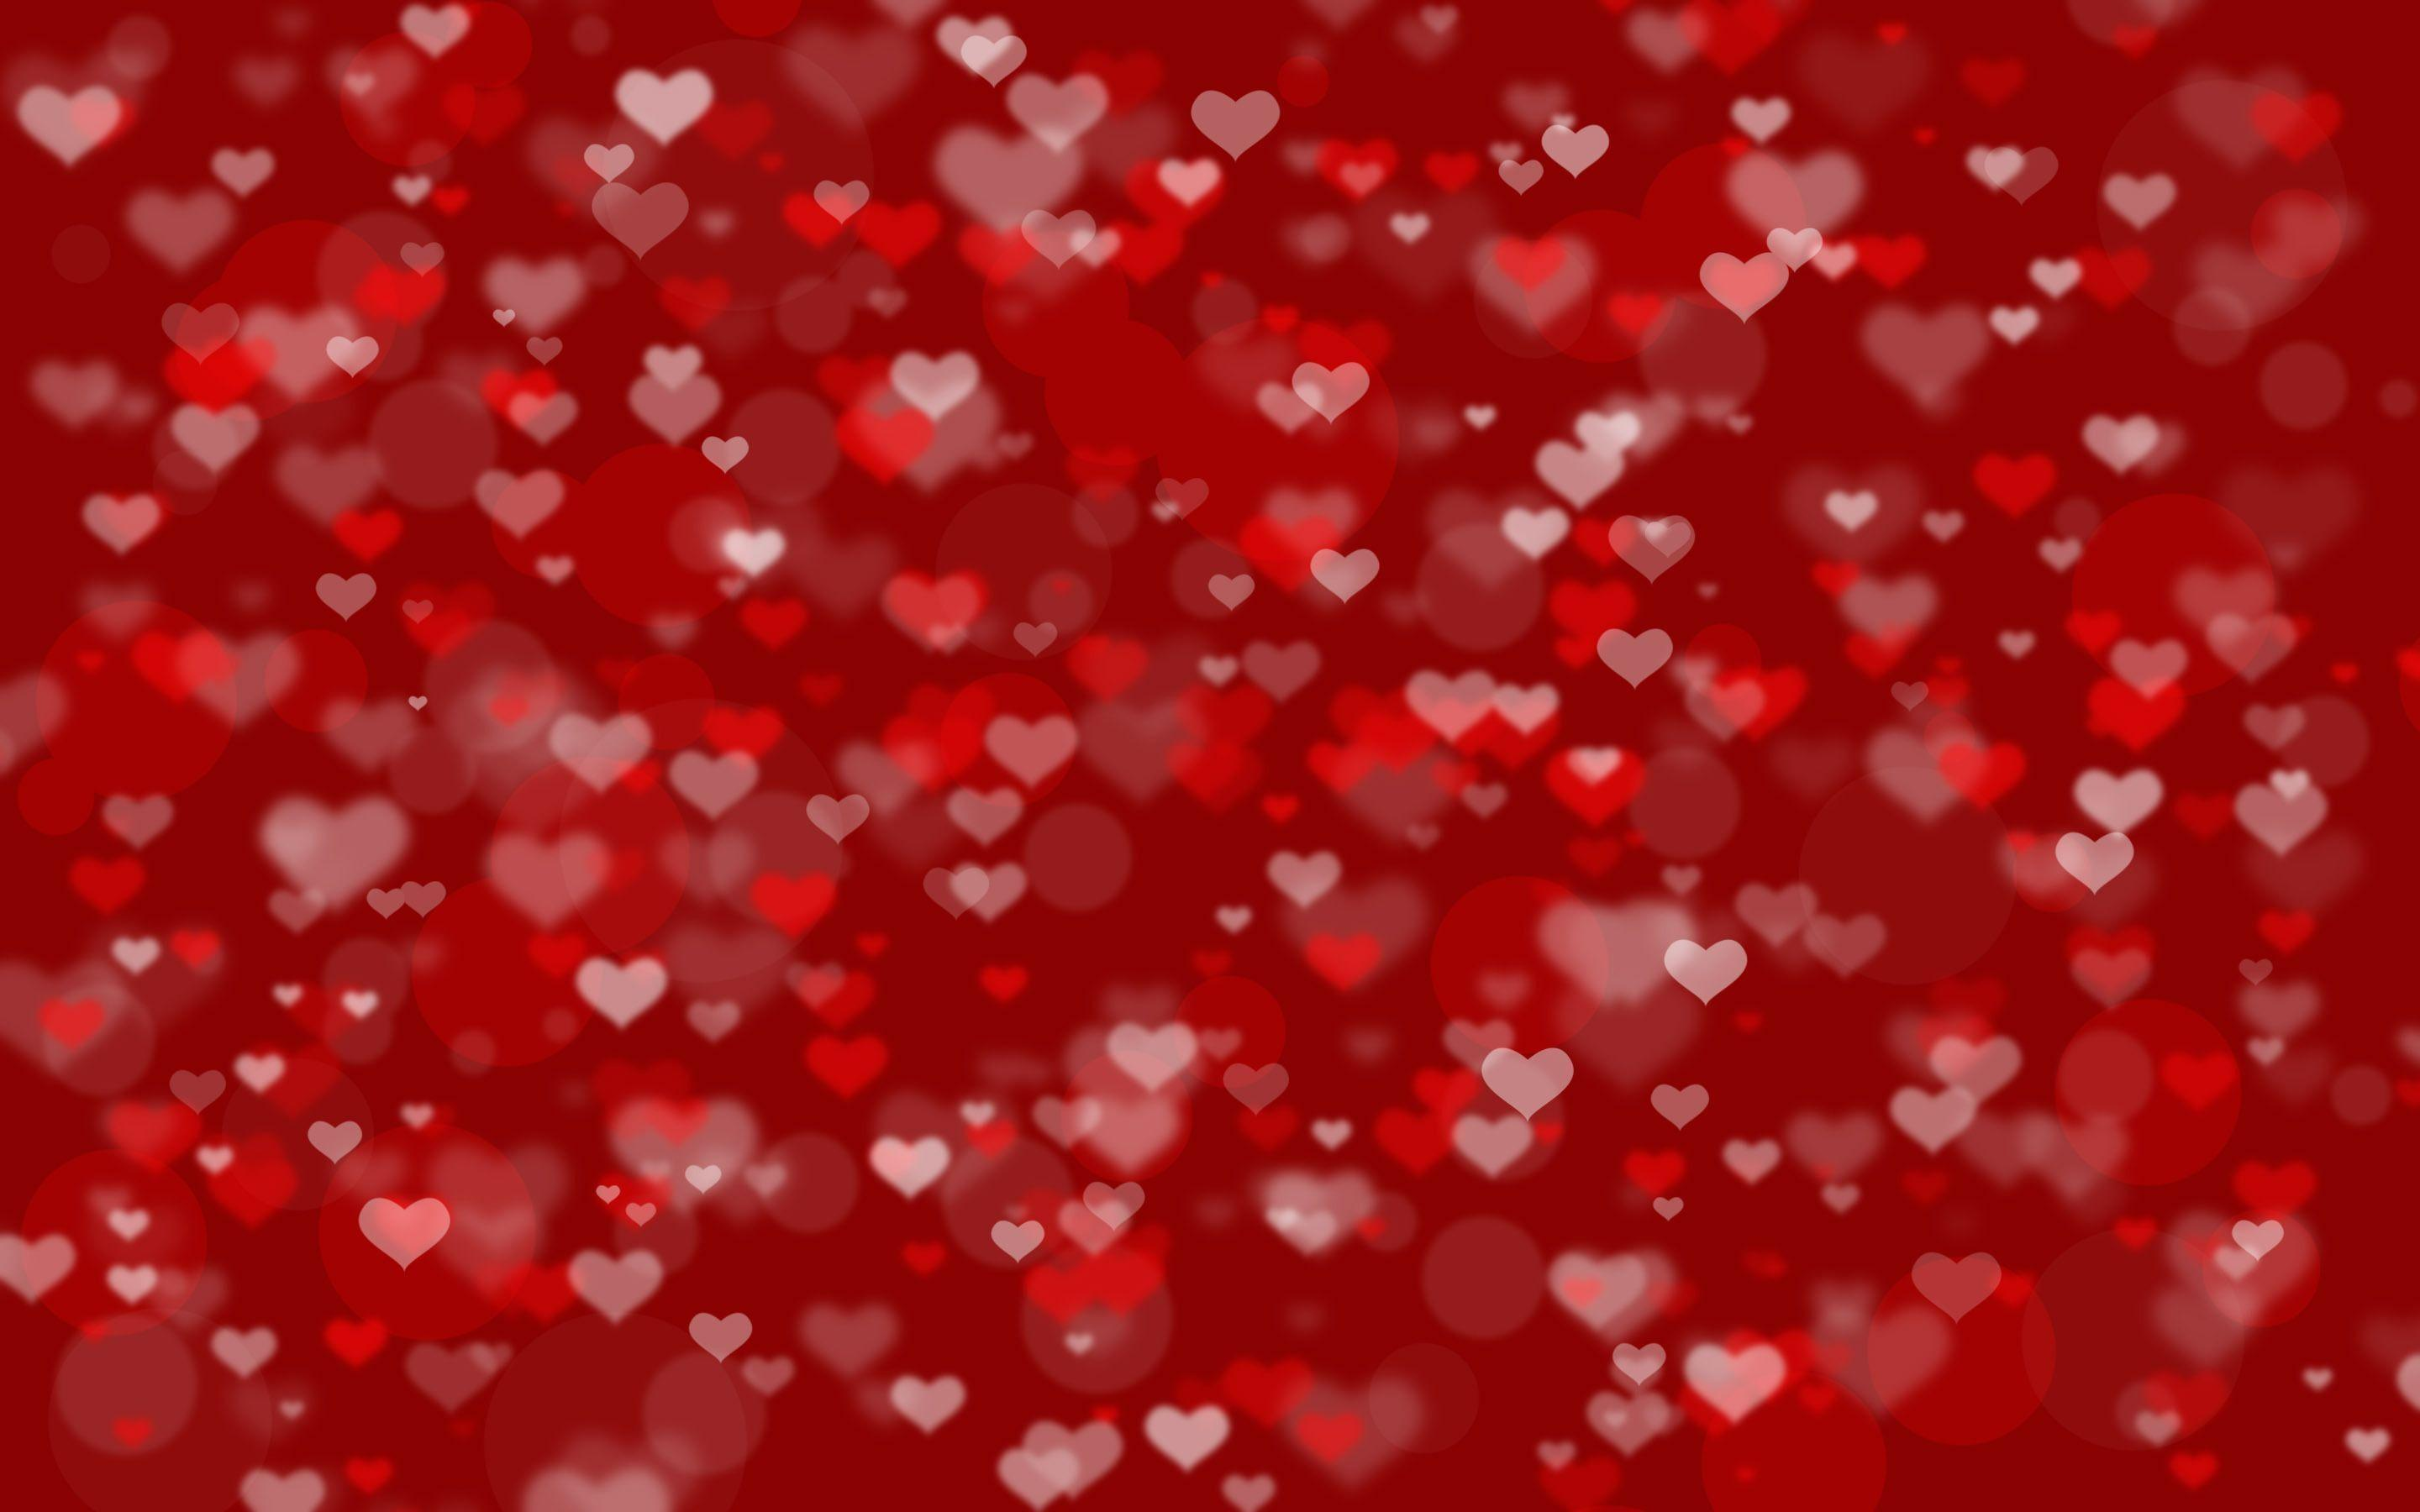 hearts desktop wallpaper - photo #34